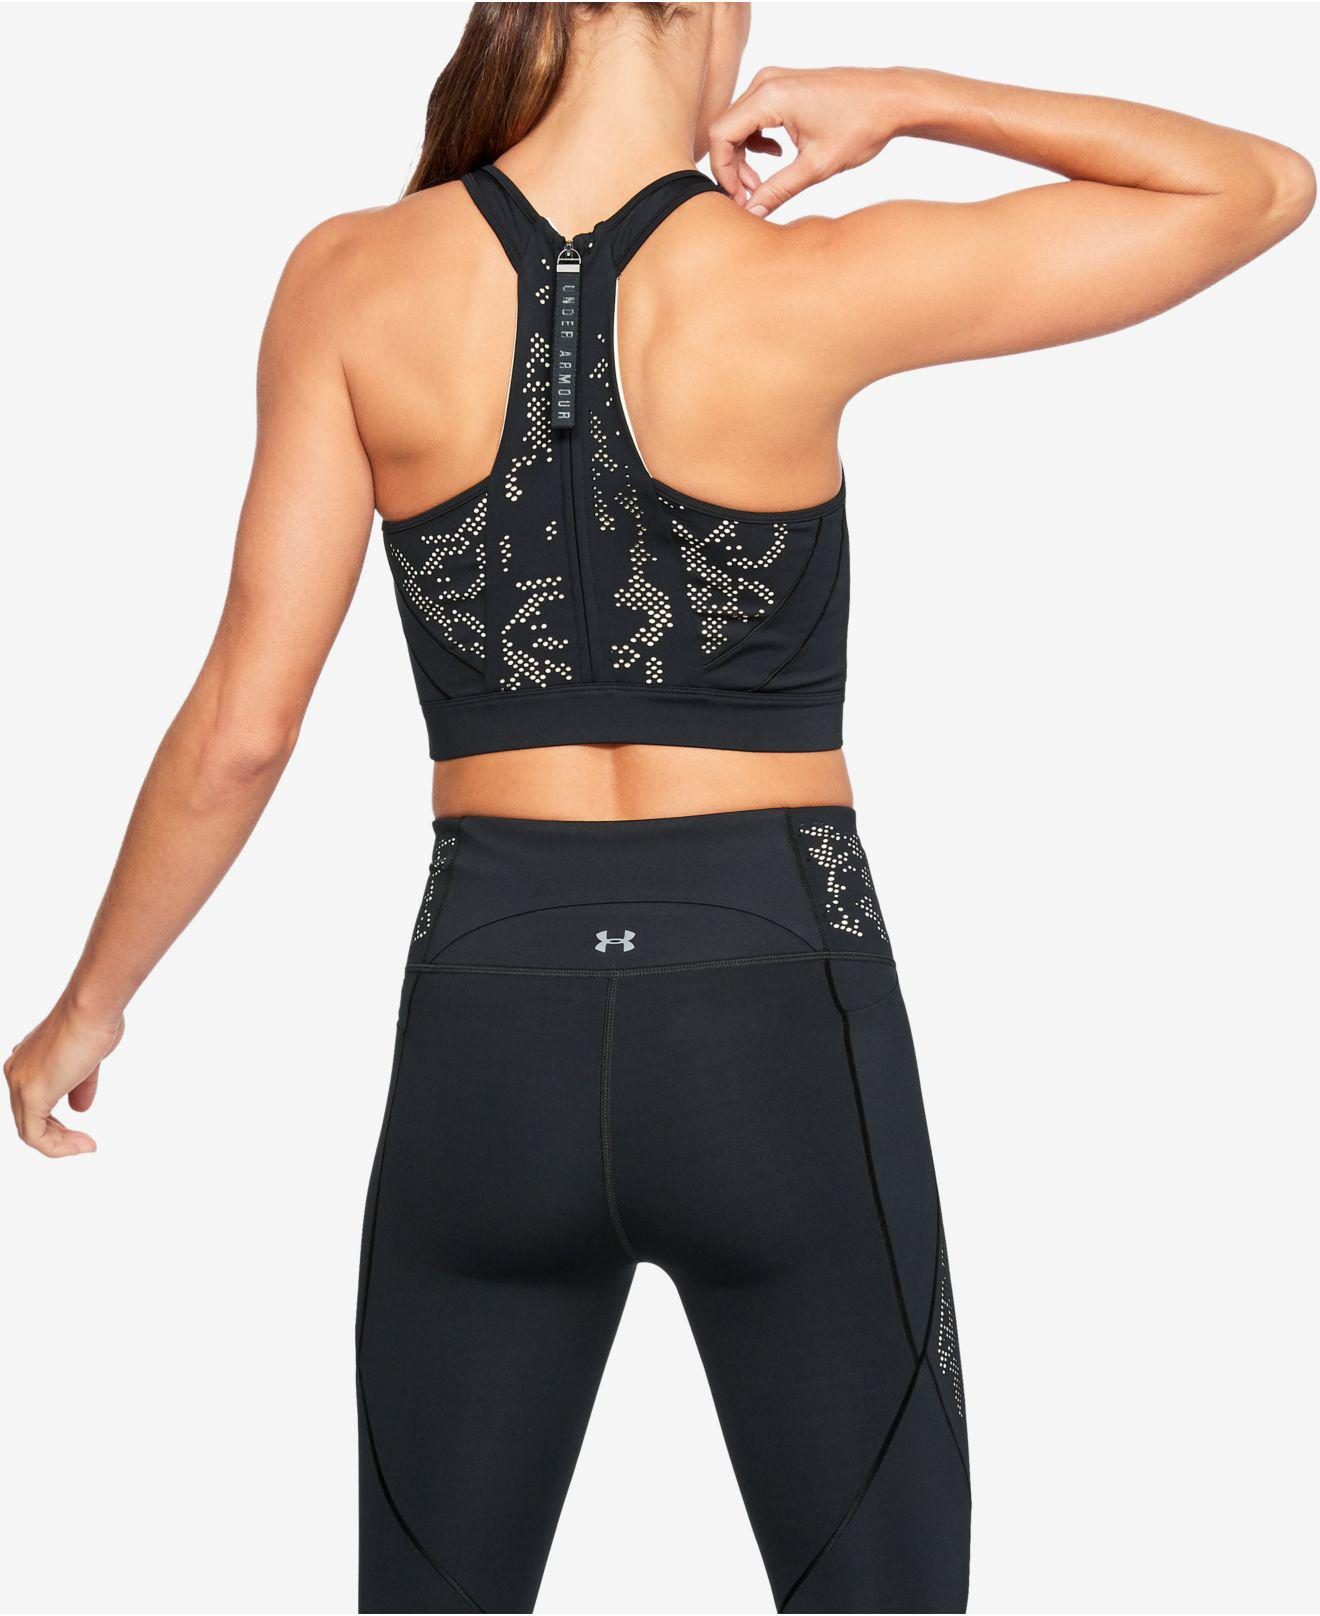 9a4704c2266f9 Lyst - Under Armour Misty Copeland Printed Racerback Cropped Tank Top in  Black - Save 33%